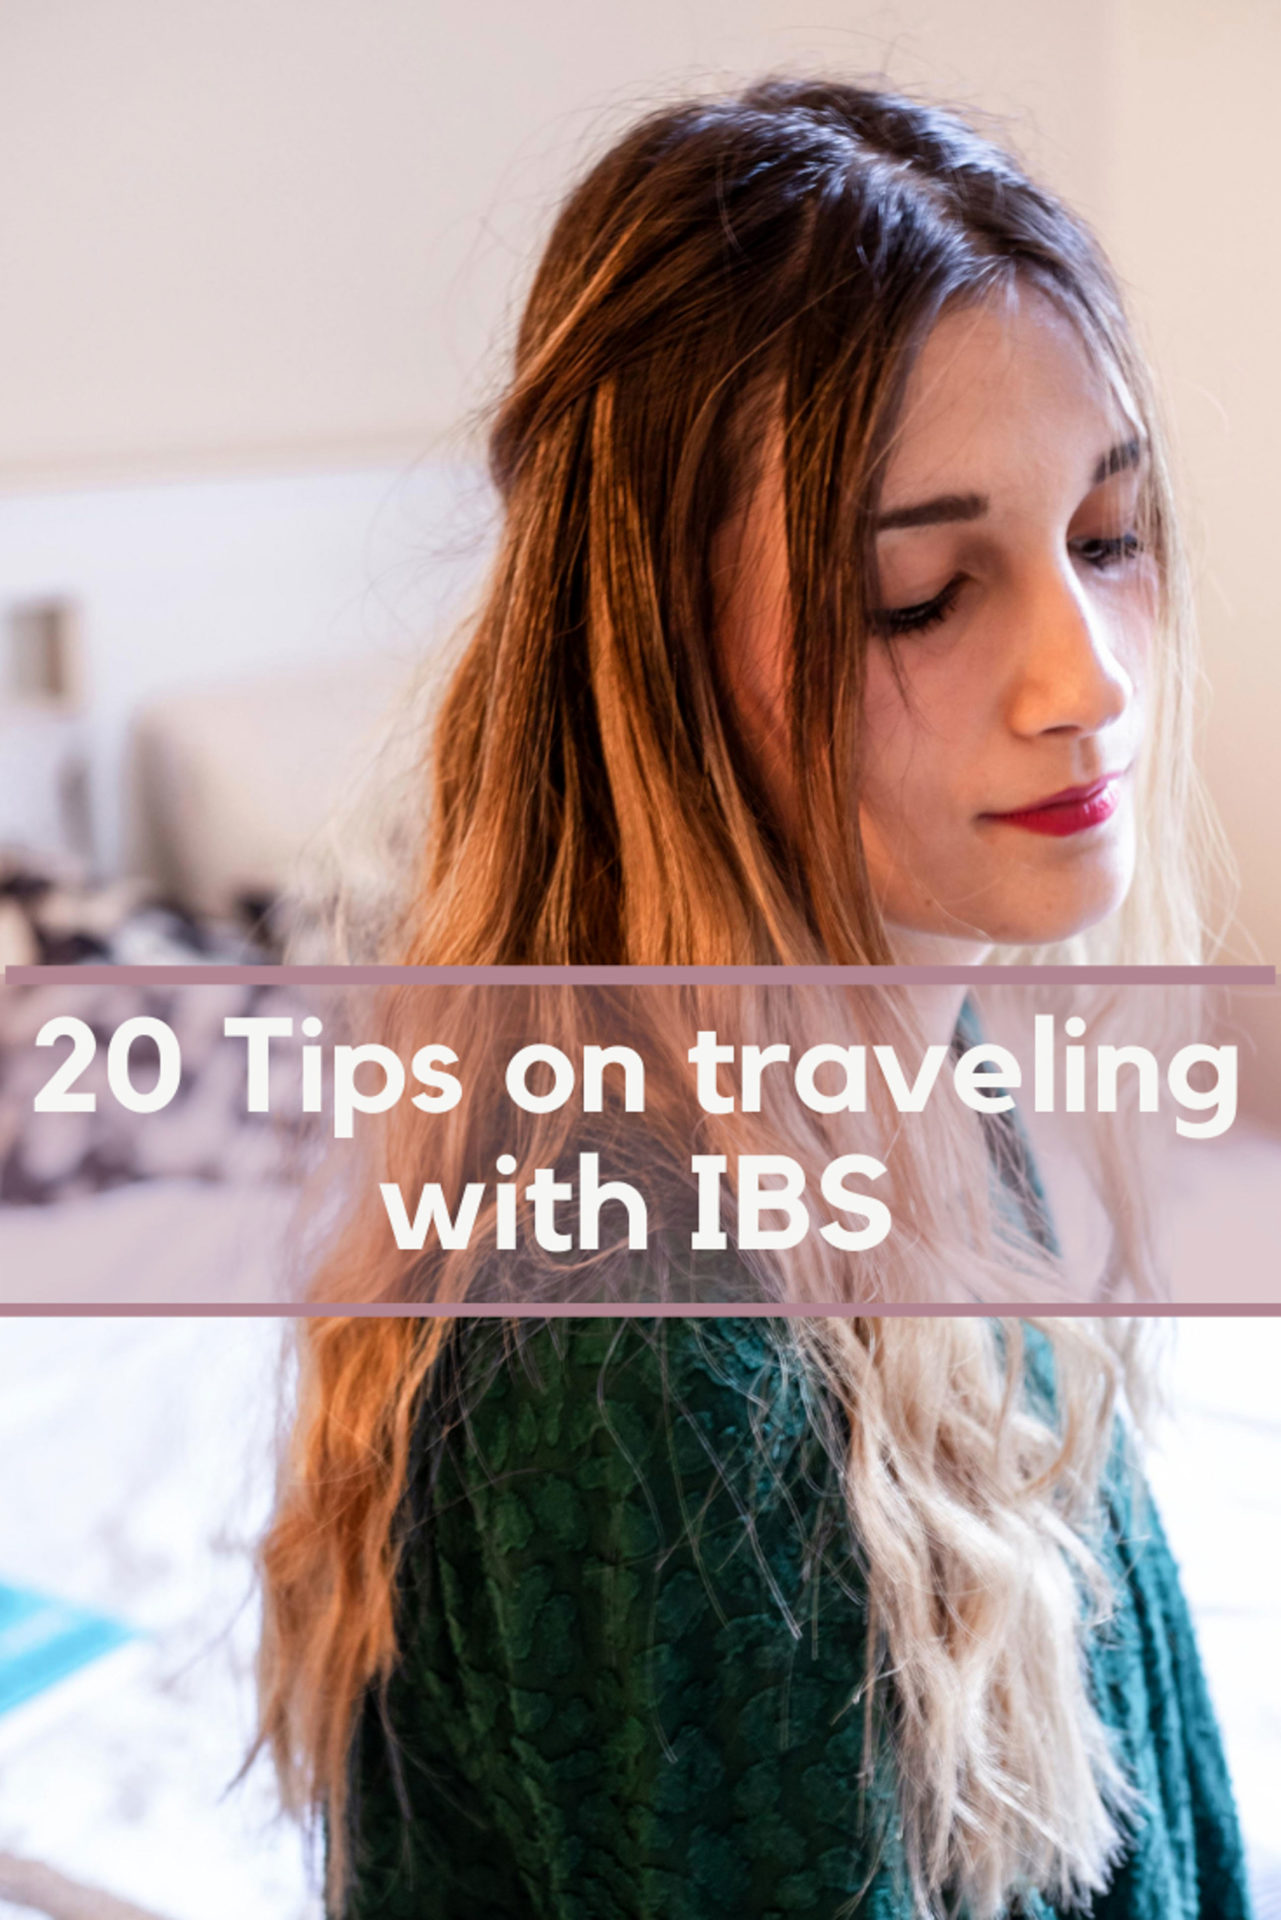 The best 20 tips for traveling with IBS. These tips can be applied for any kind of trip, from vacations to business trips.